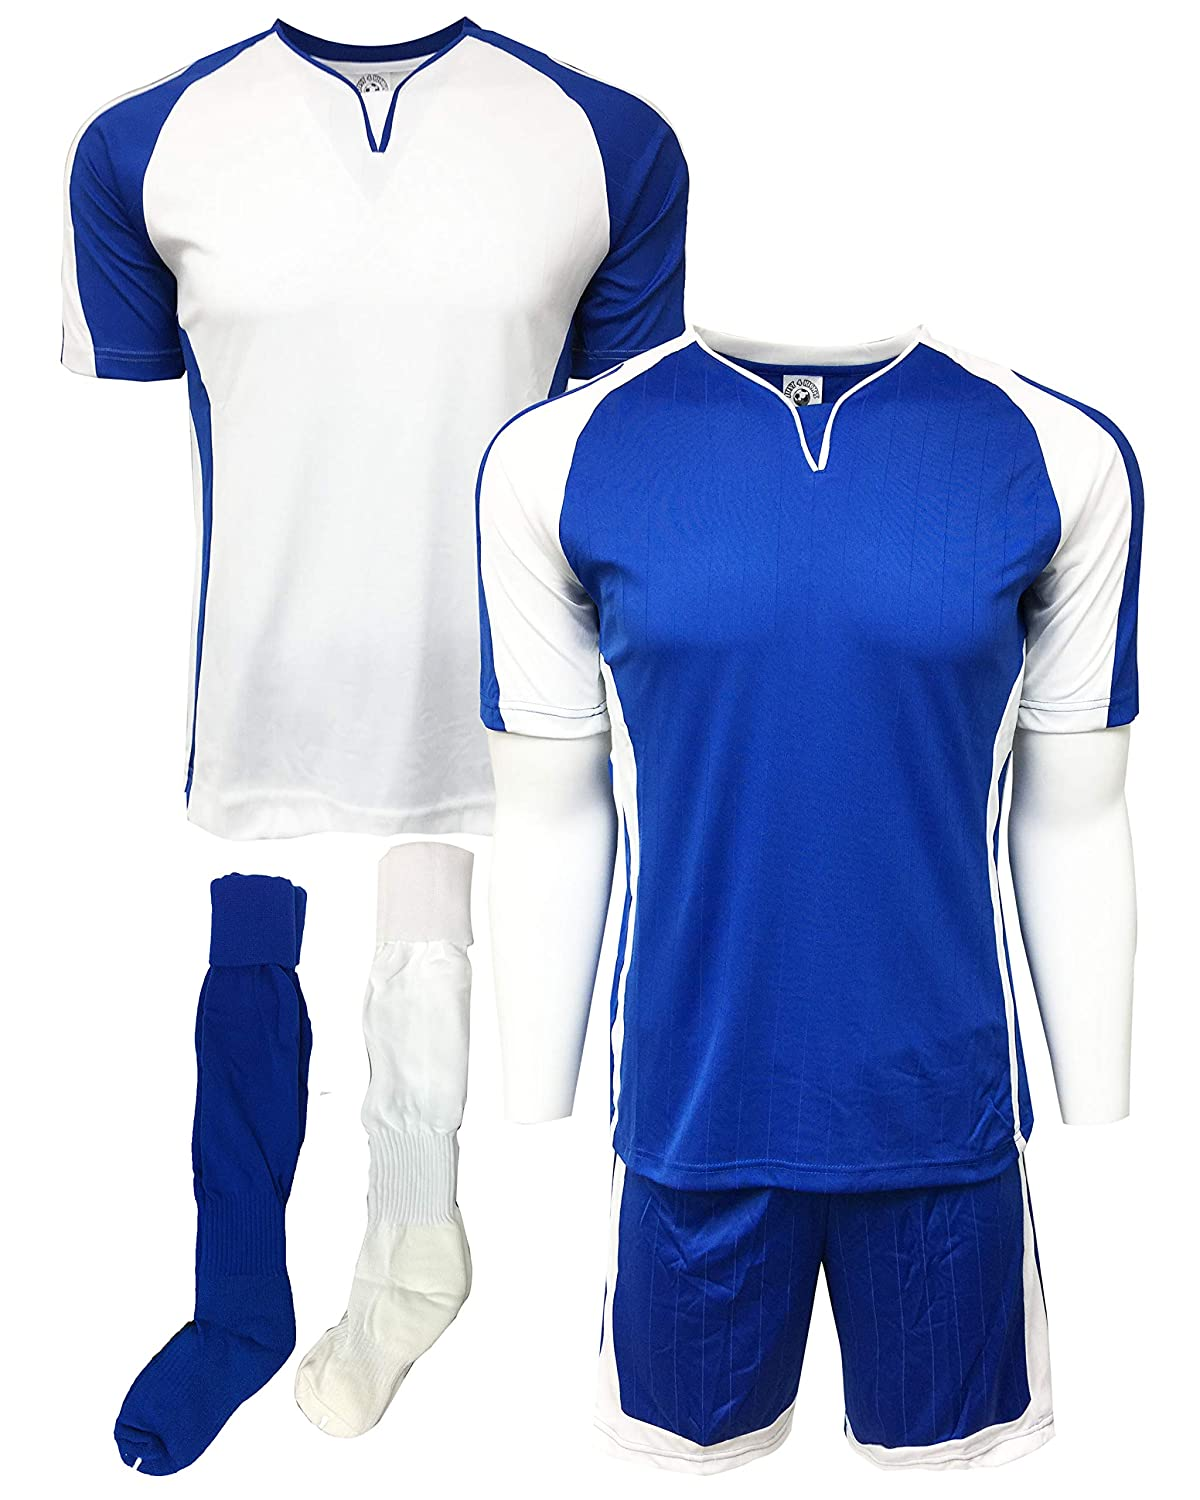 new style 89956 58b9d Soccer Uniforms for Team,5 pcs SET, Royal/White (Two Jerseys, One Short and  Two Pair of Socks, one royal and one white)